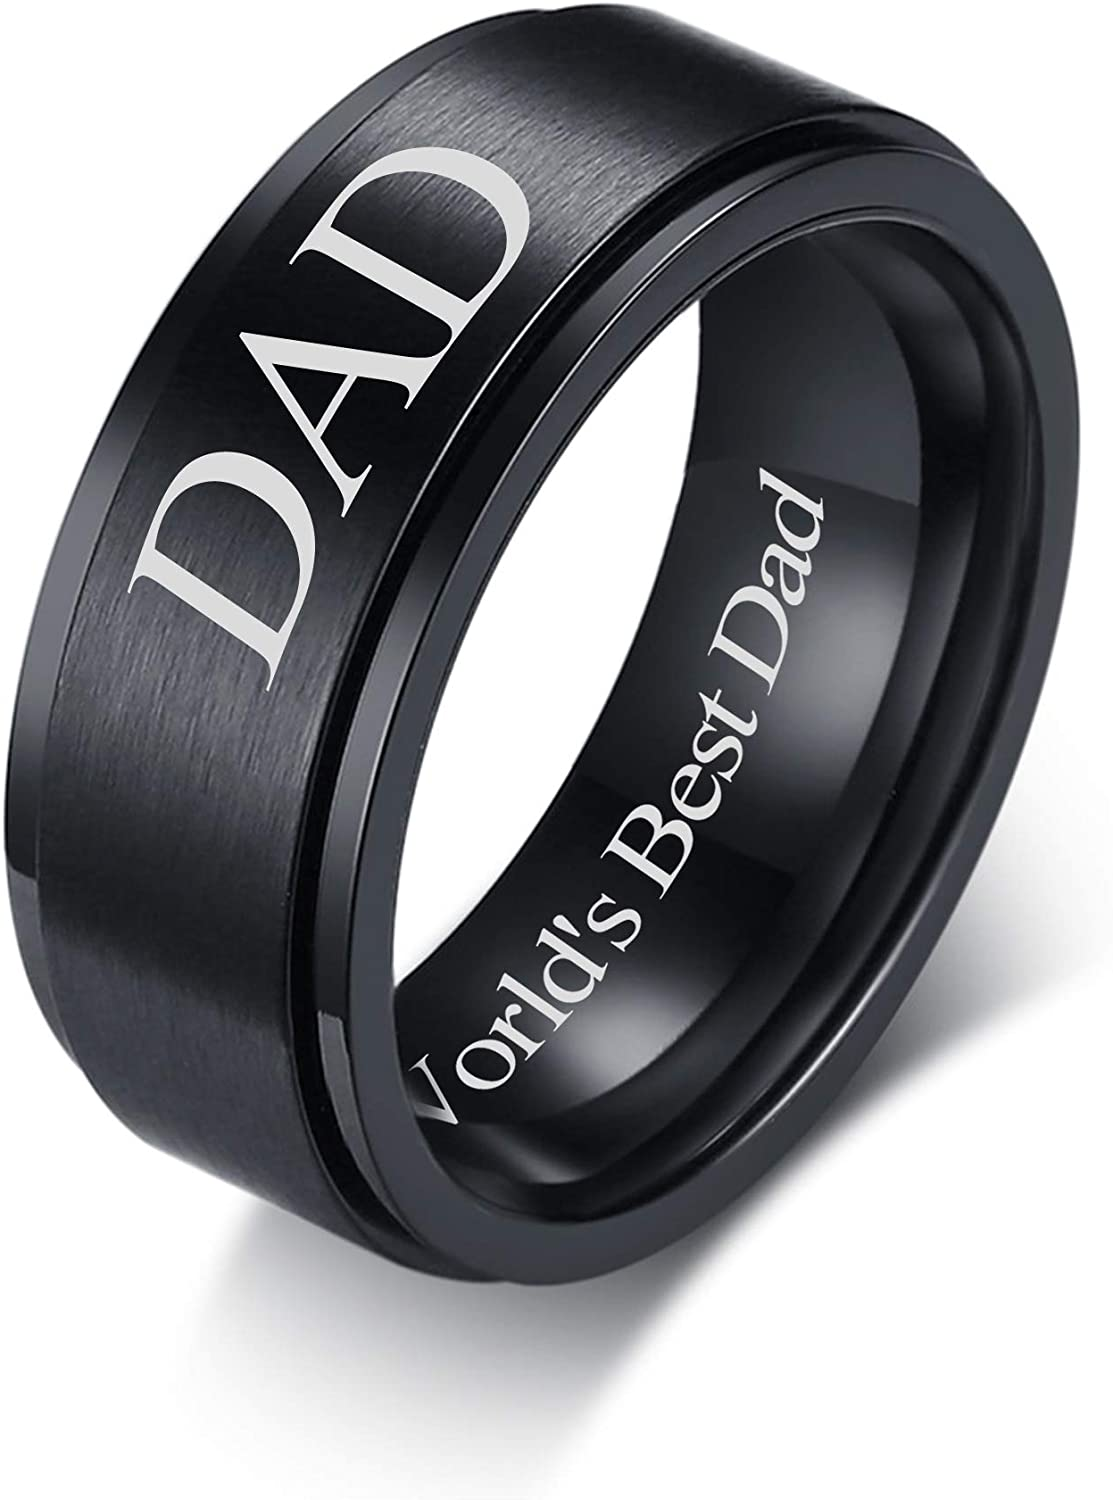 VNOX 8mm Stainless Steel Daddy World's B Engraved Matte ! Super beauty product restock quality top! Best Dad Superior